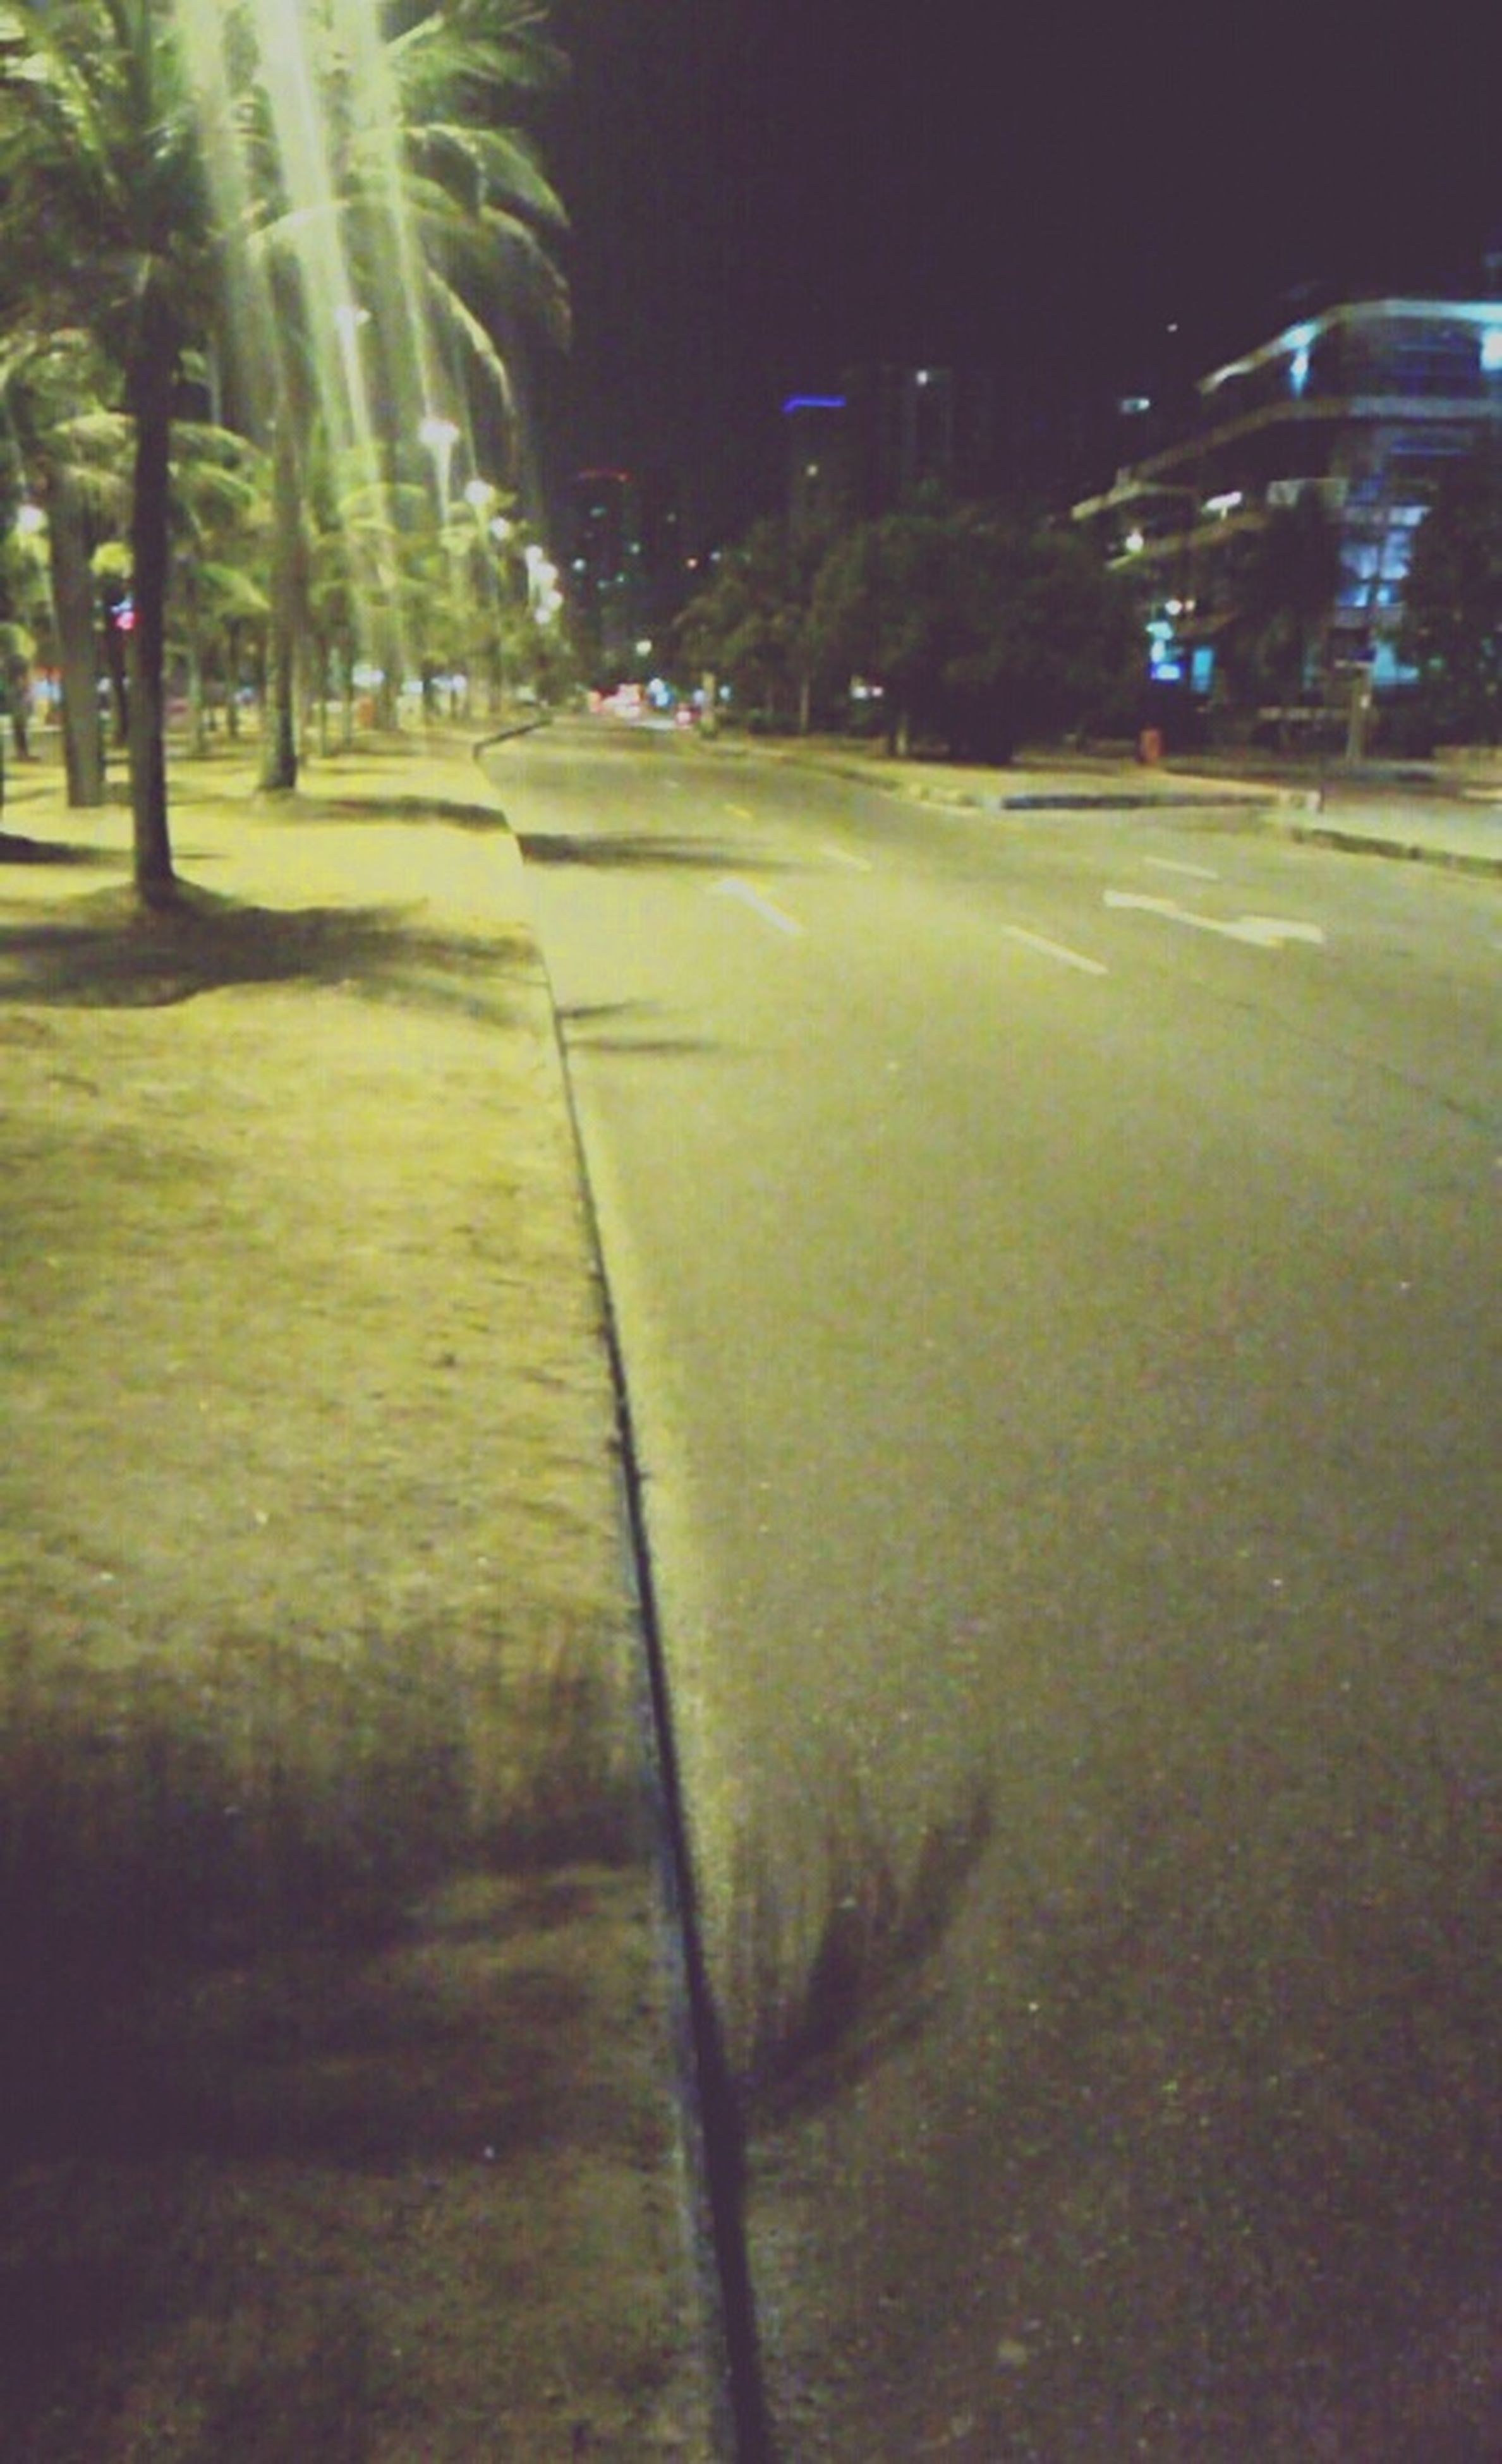 night, tree, road, grass, illuminated, street, transportation, the way forward, green color, outdoors, street light, field, park - man made space, no people, empty, nature, diminishing perspective, growth, tranquility, incidental people